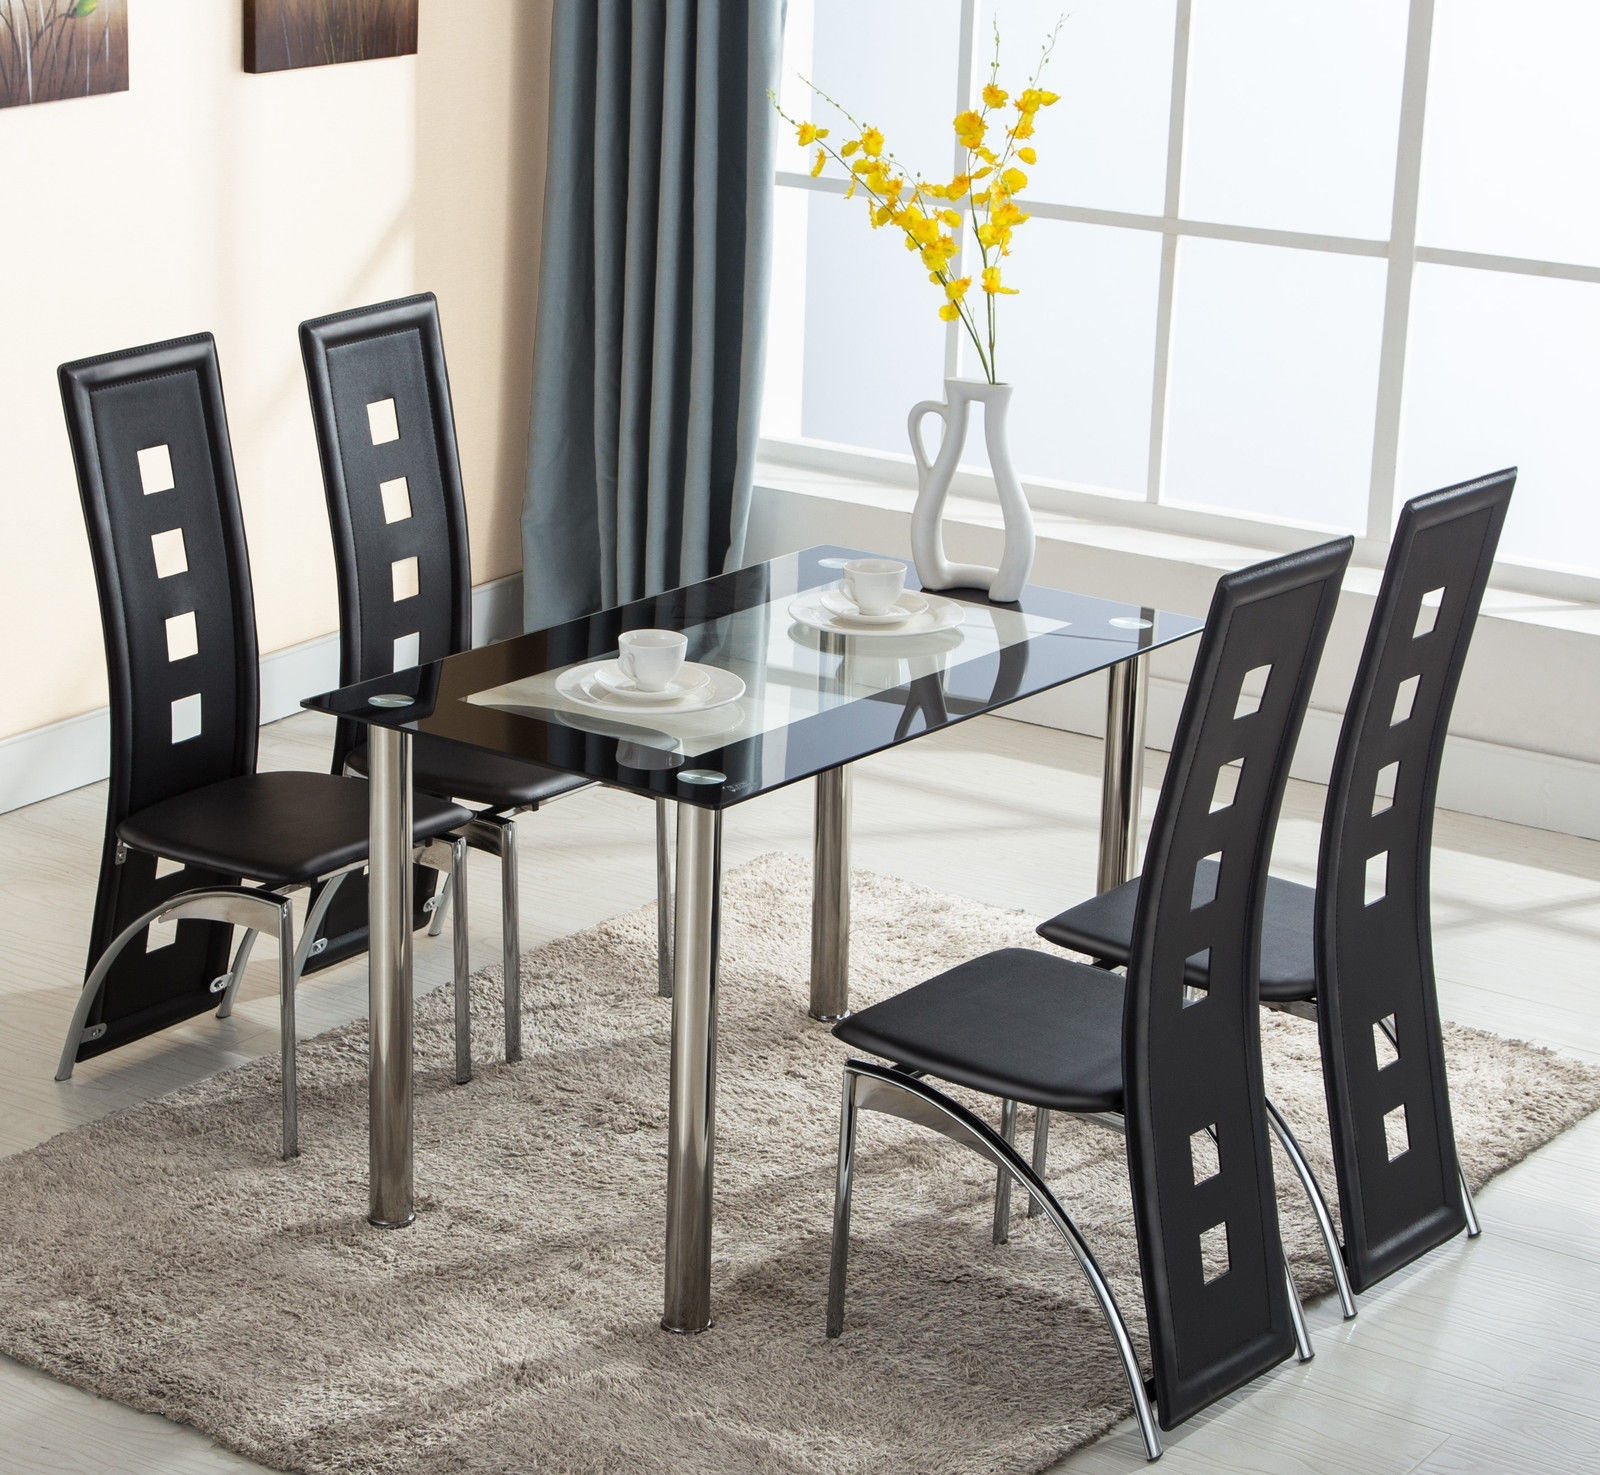 Glass Dining Tables And Leather Chairs with regard to Well known 5 Piece Glass Dining Table Set 4 Leather Chairs Kitchen Room